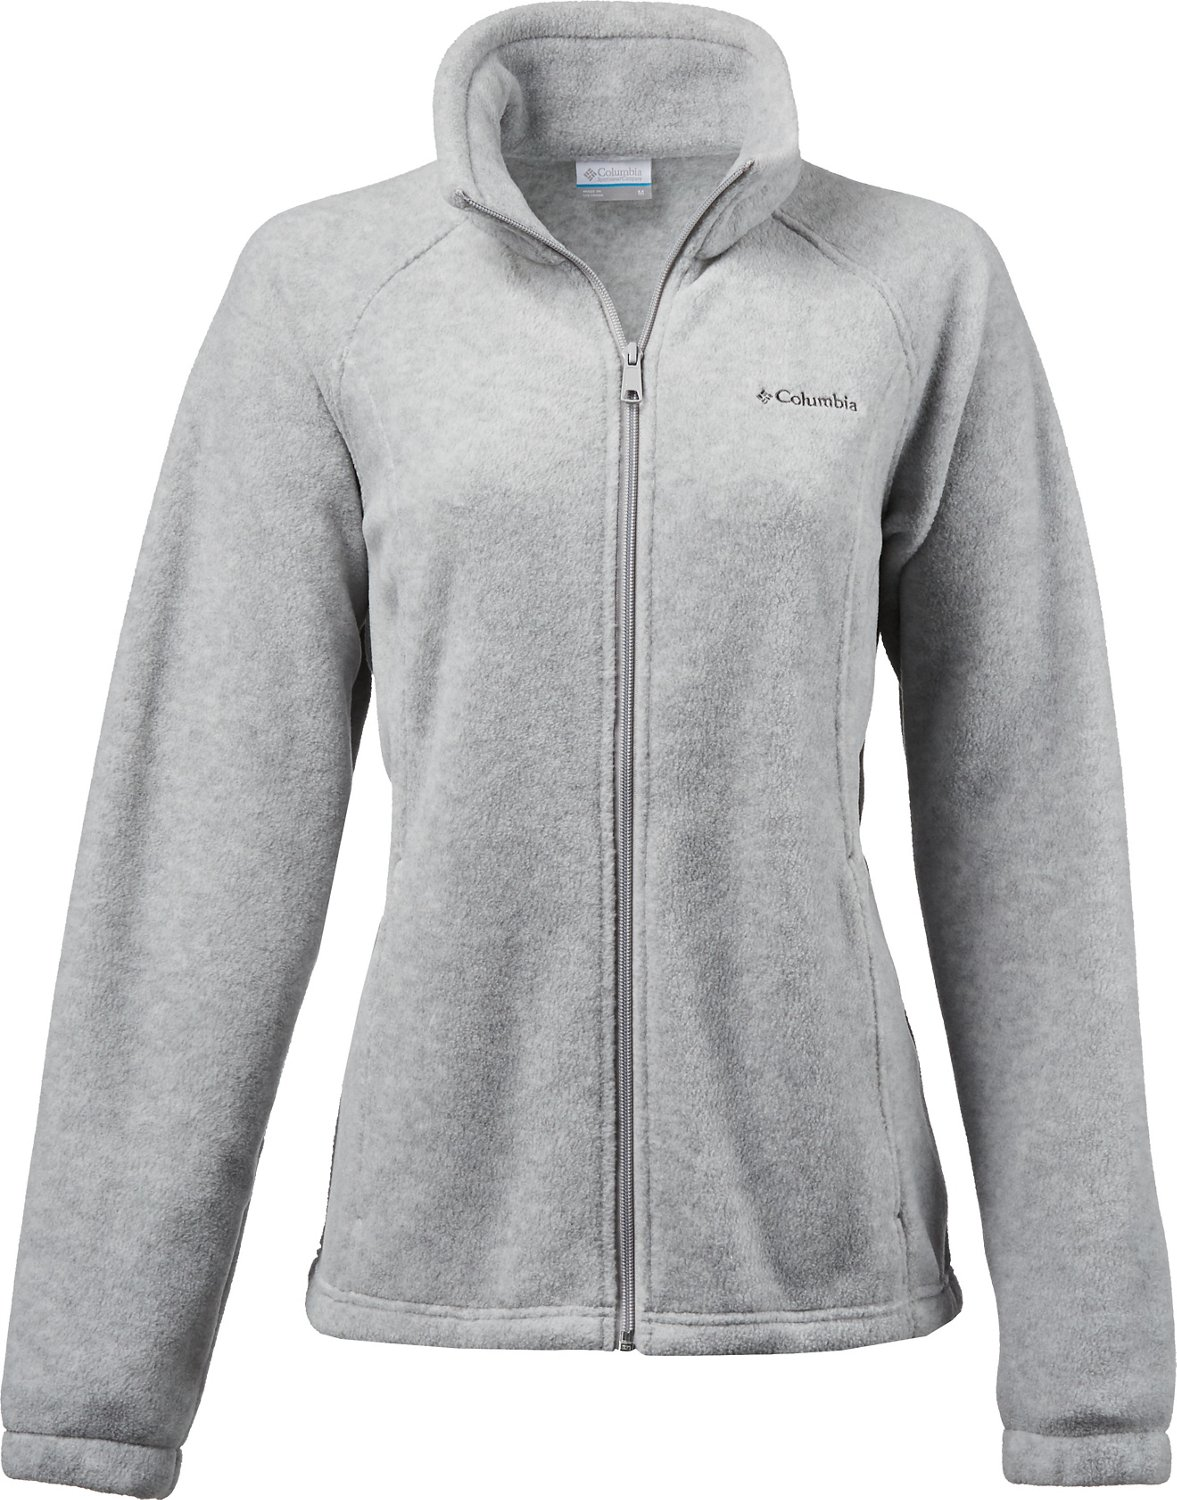 0f0acede6 Columbia Sportswear Women's Benton Springs Full Zip Fleece Jacket